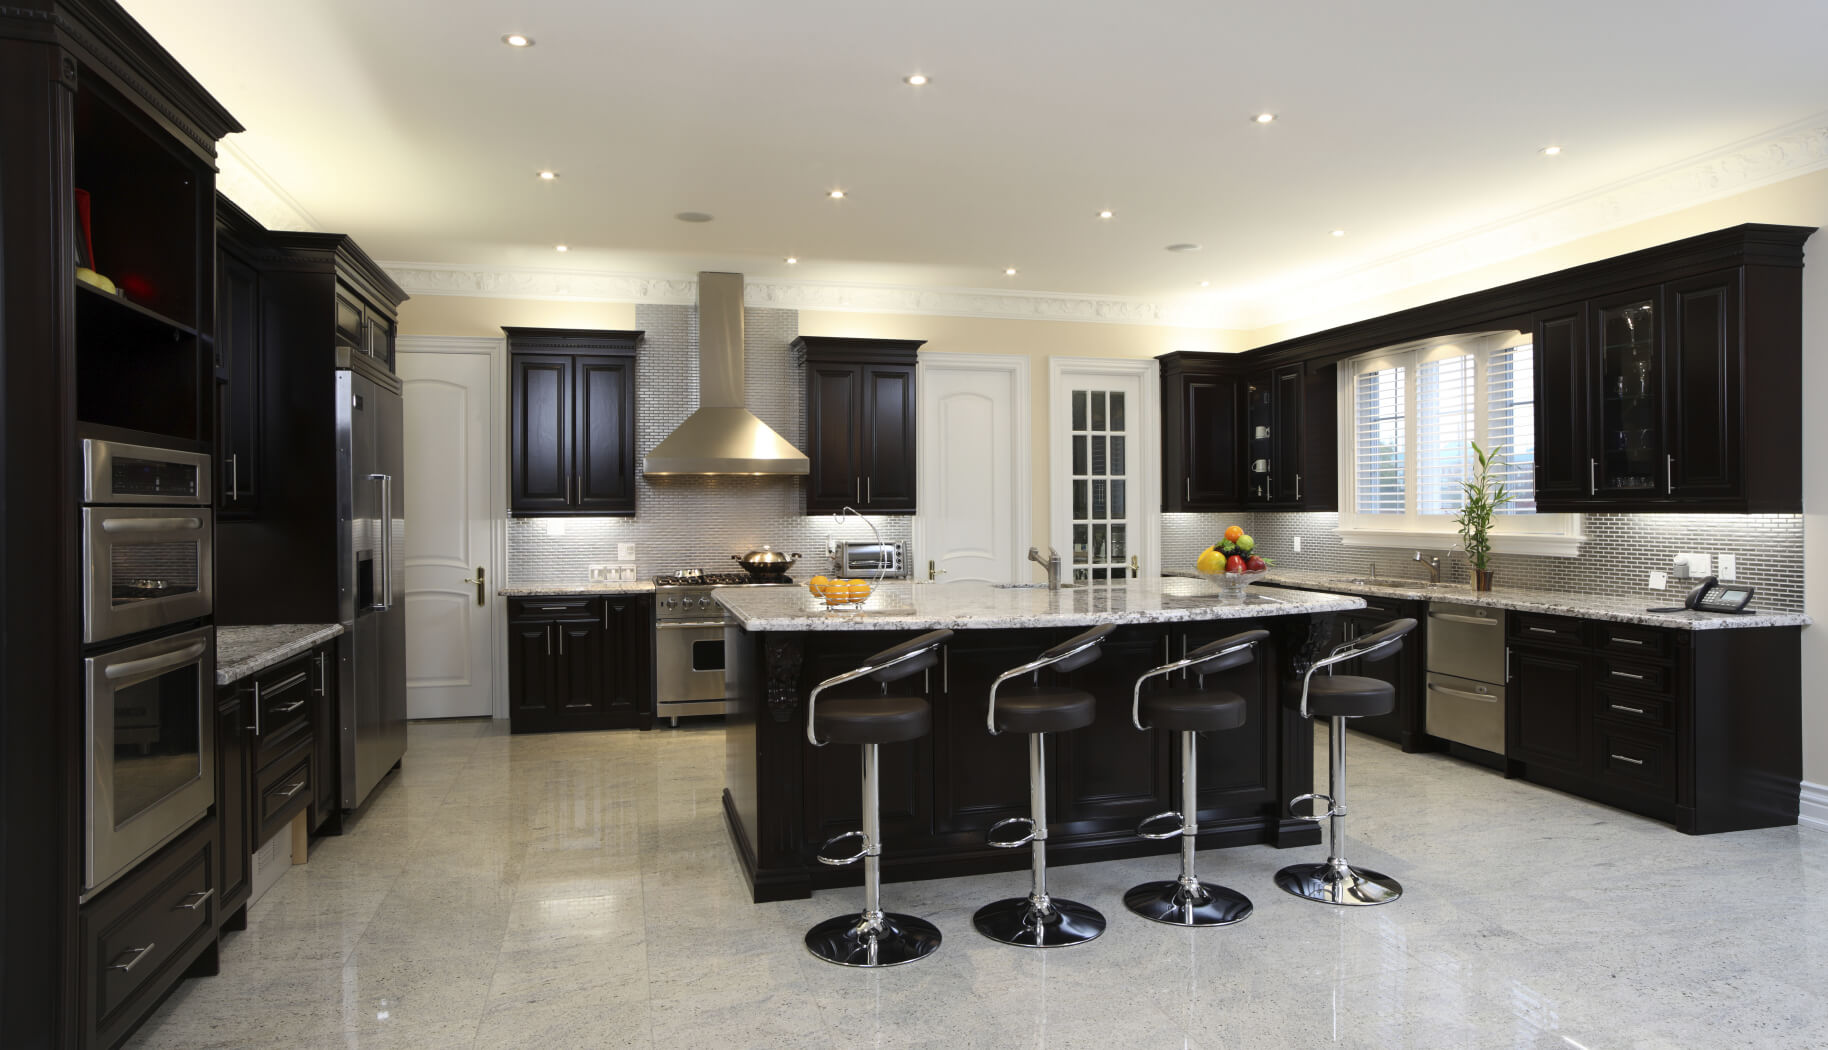 52 dark kitchens with dark wood and black kitchen cabinets for Images of black kitchen cabinets